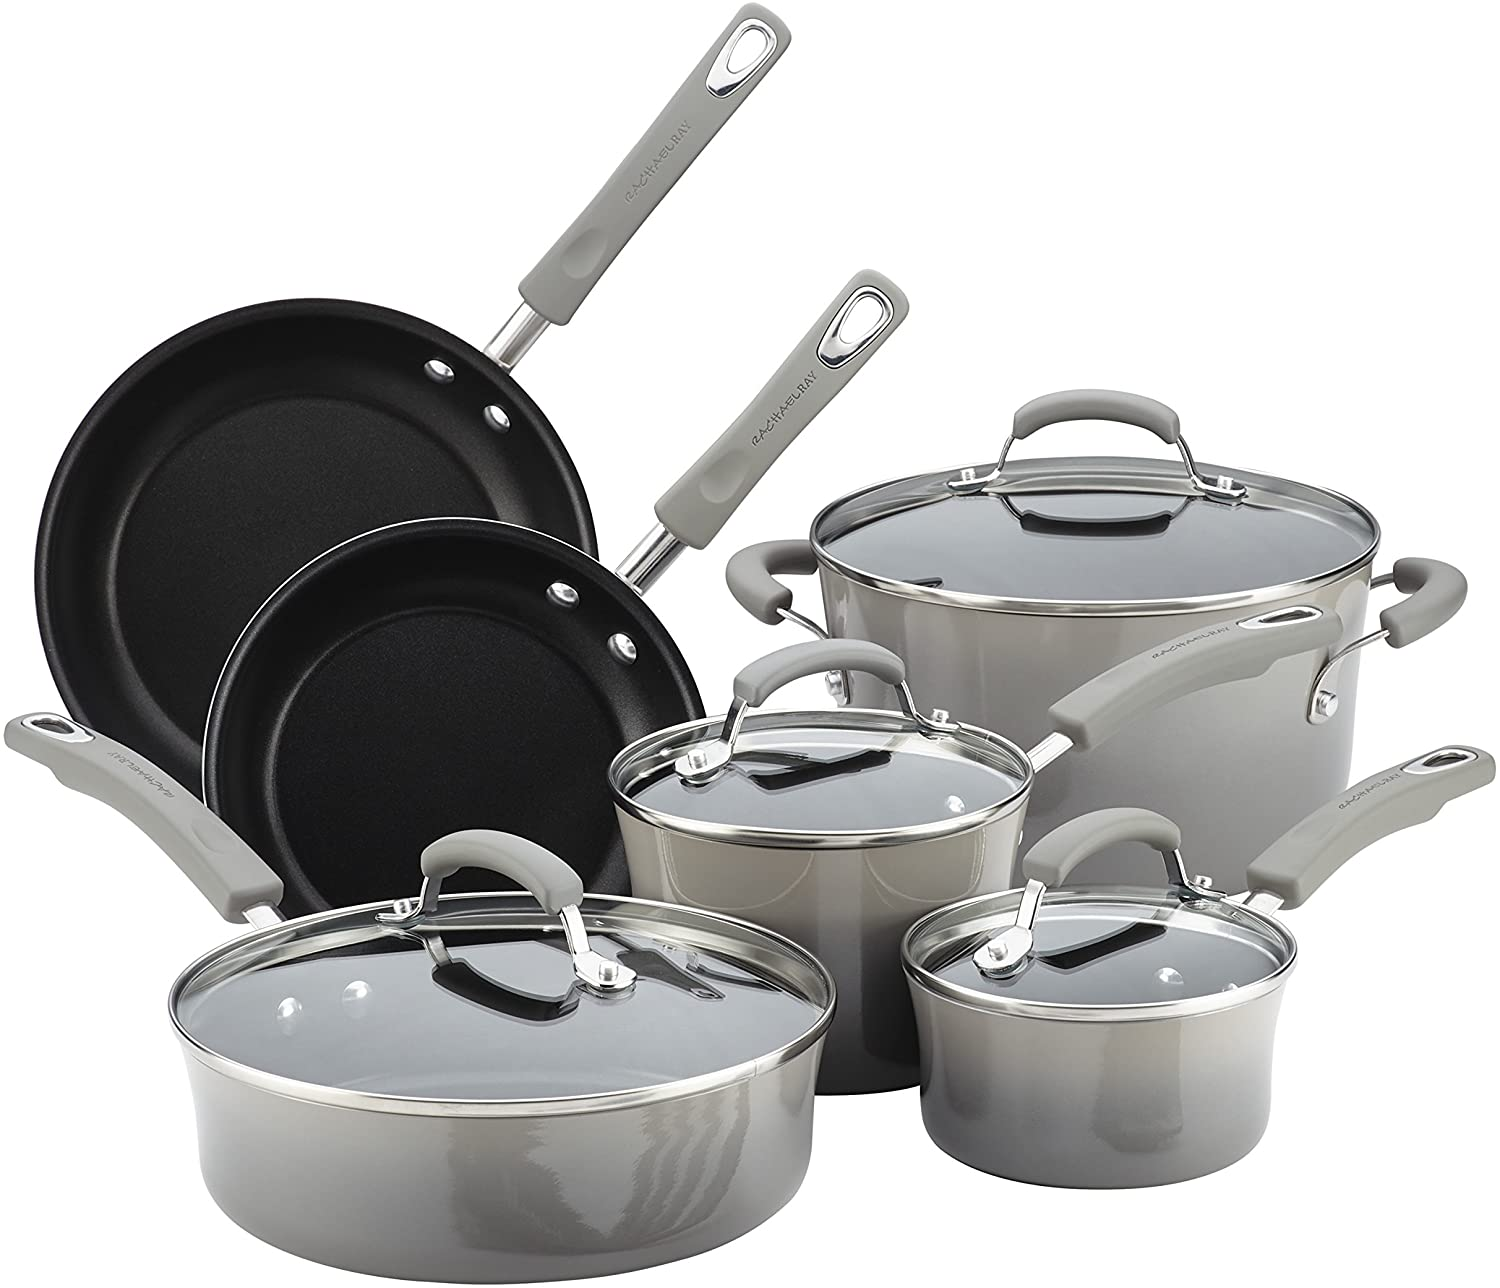 Rachael Ray Brights Nonstick Cookware Pots and Pans Set, Sea -Salt Gray